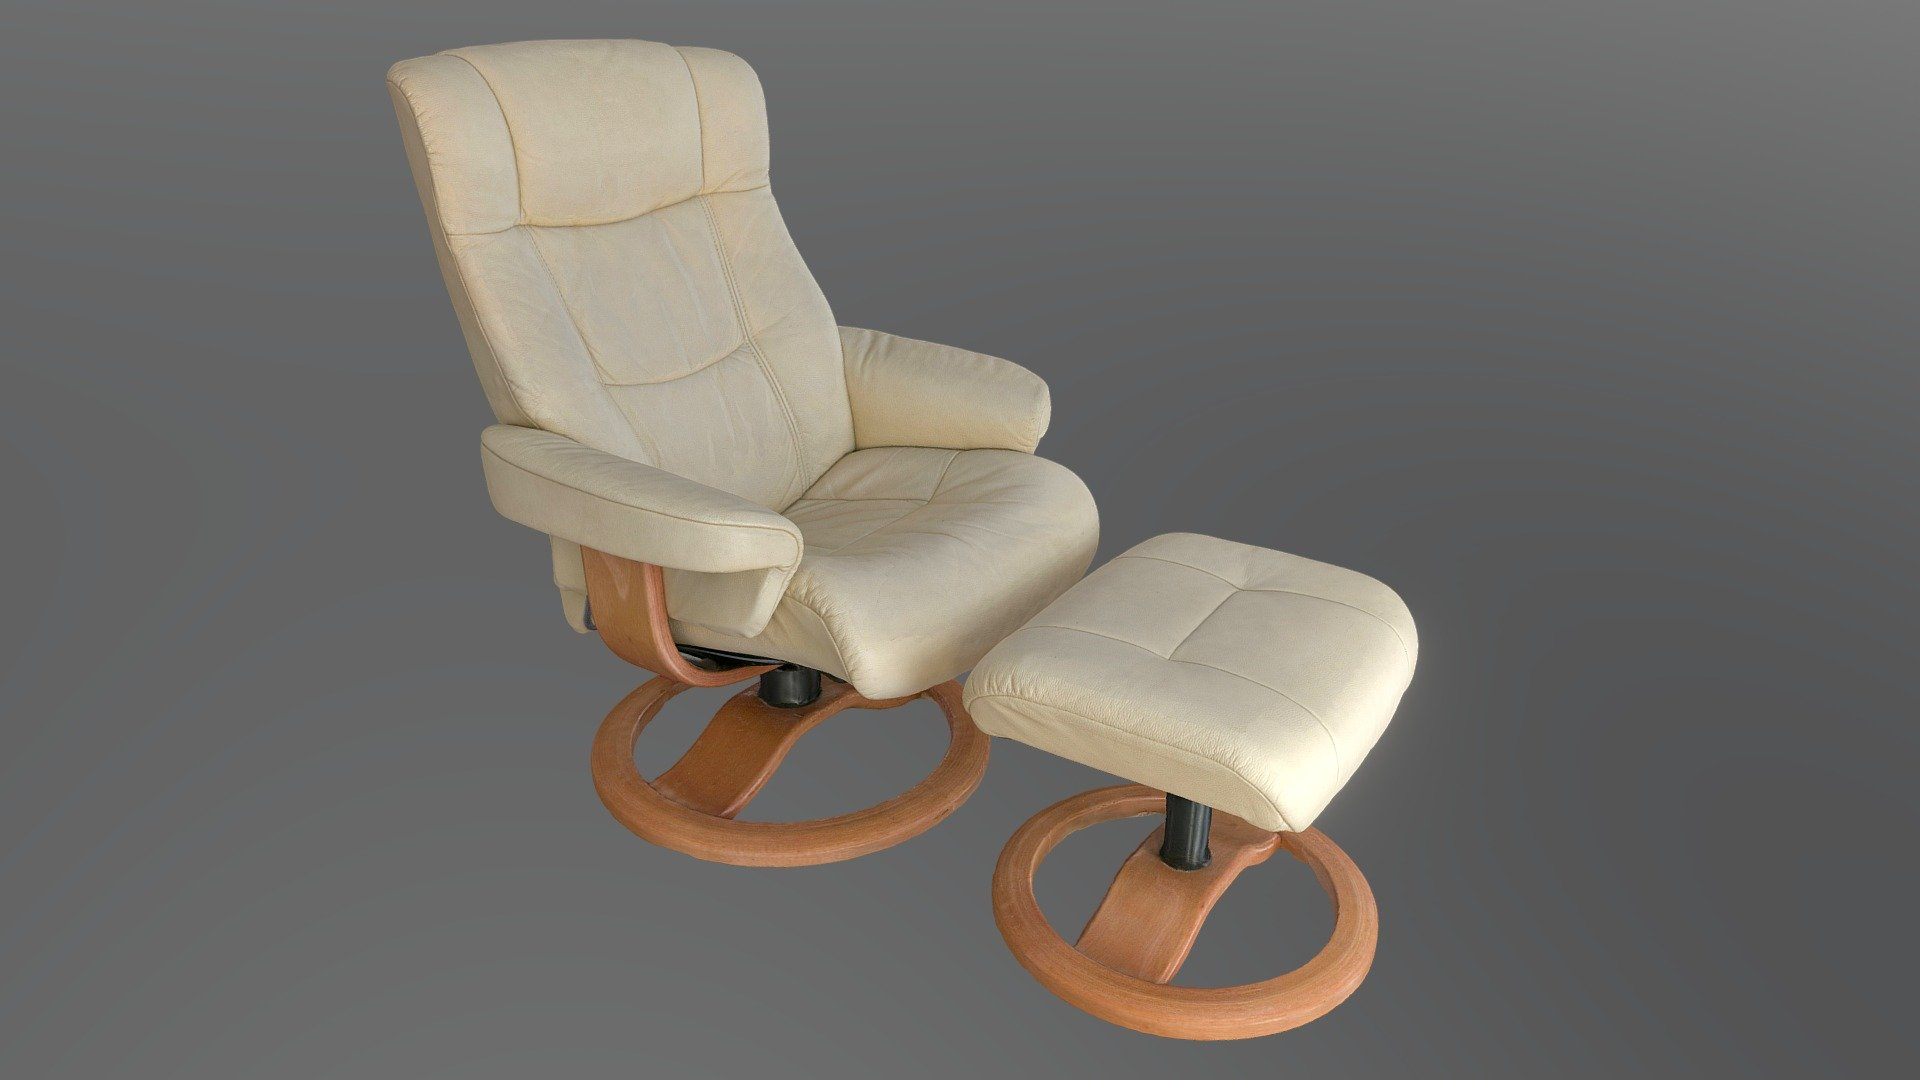 Relax Leather Chair Relax Ledersessel Download Free 3d Model By Nedo Nedo 5c9785e Sketchfab